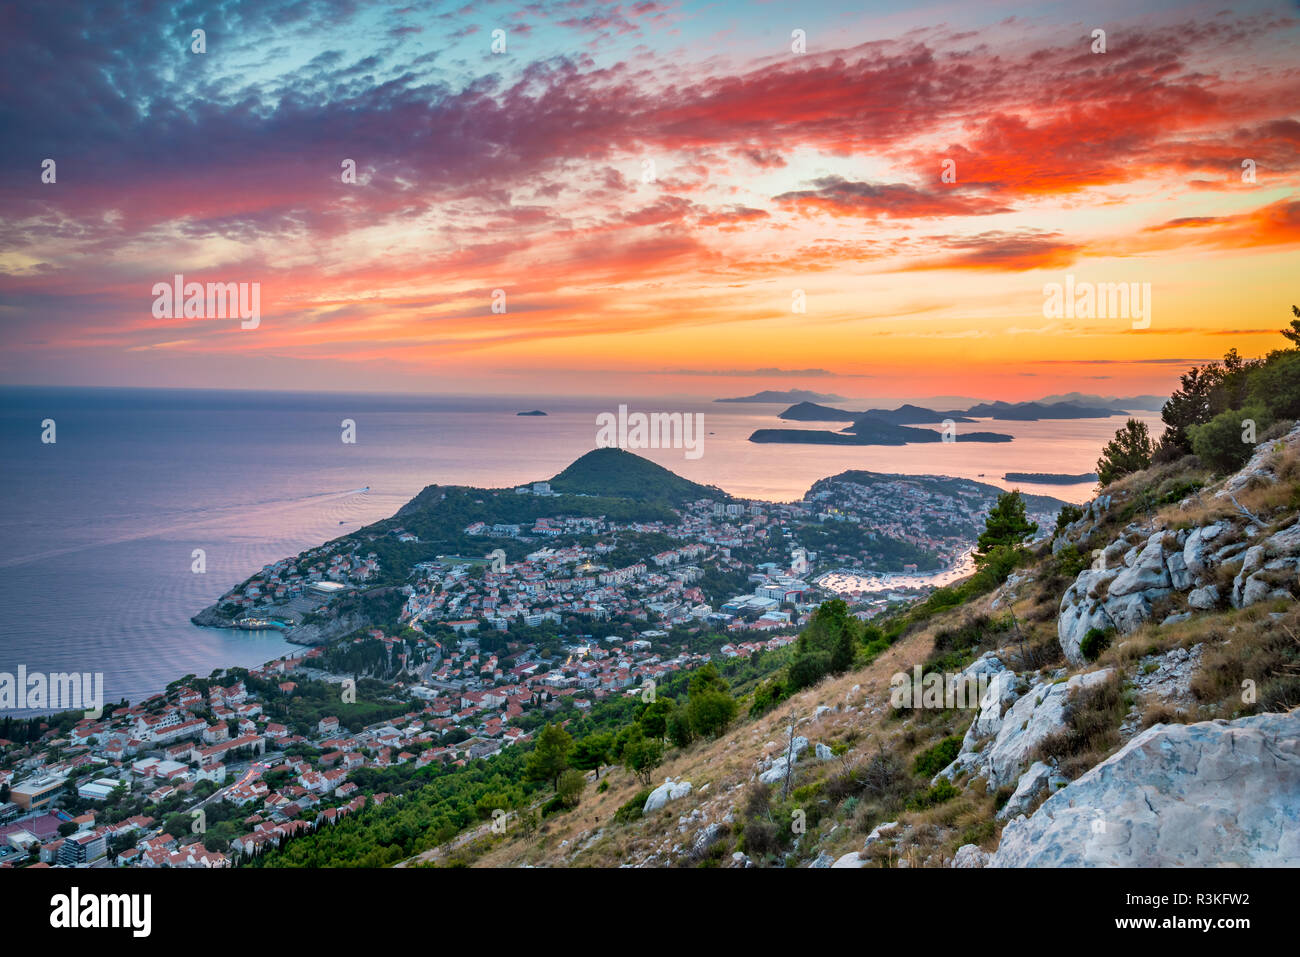 Dubrovnik, Croatia. Spectacular twilight picturesque view on the old town, medieval Ragusa on Dalmatian Coast. - Stock Image